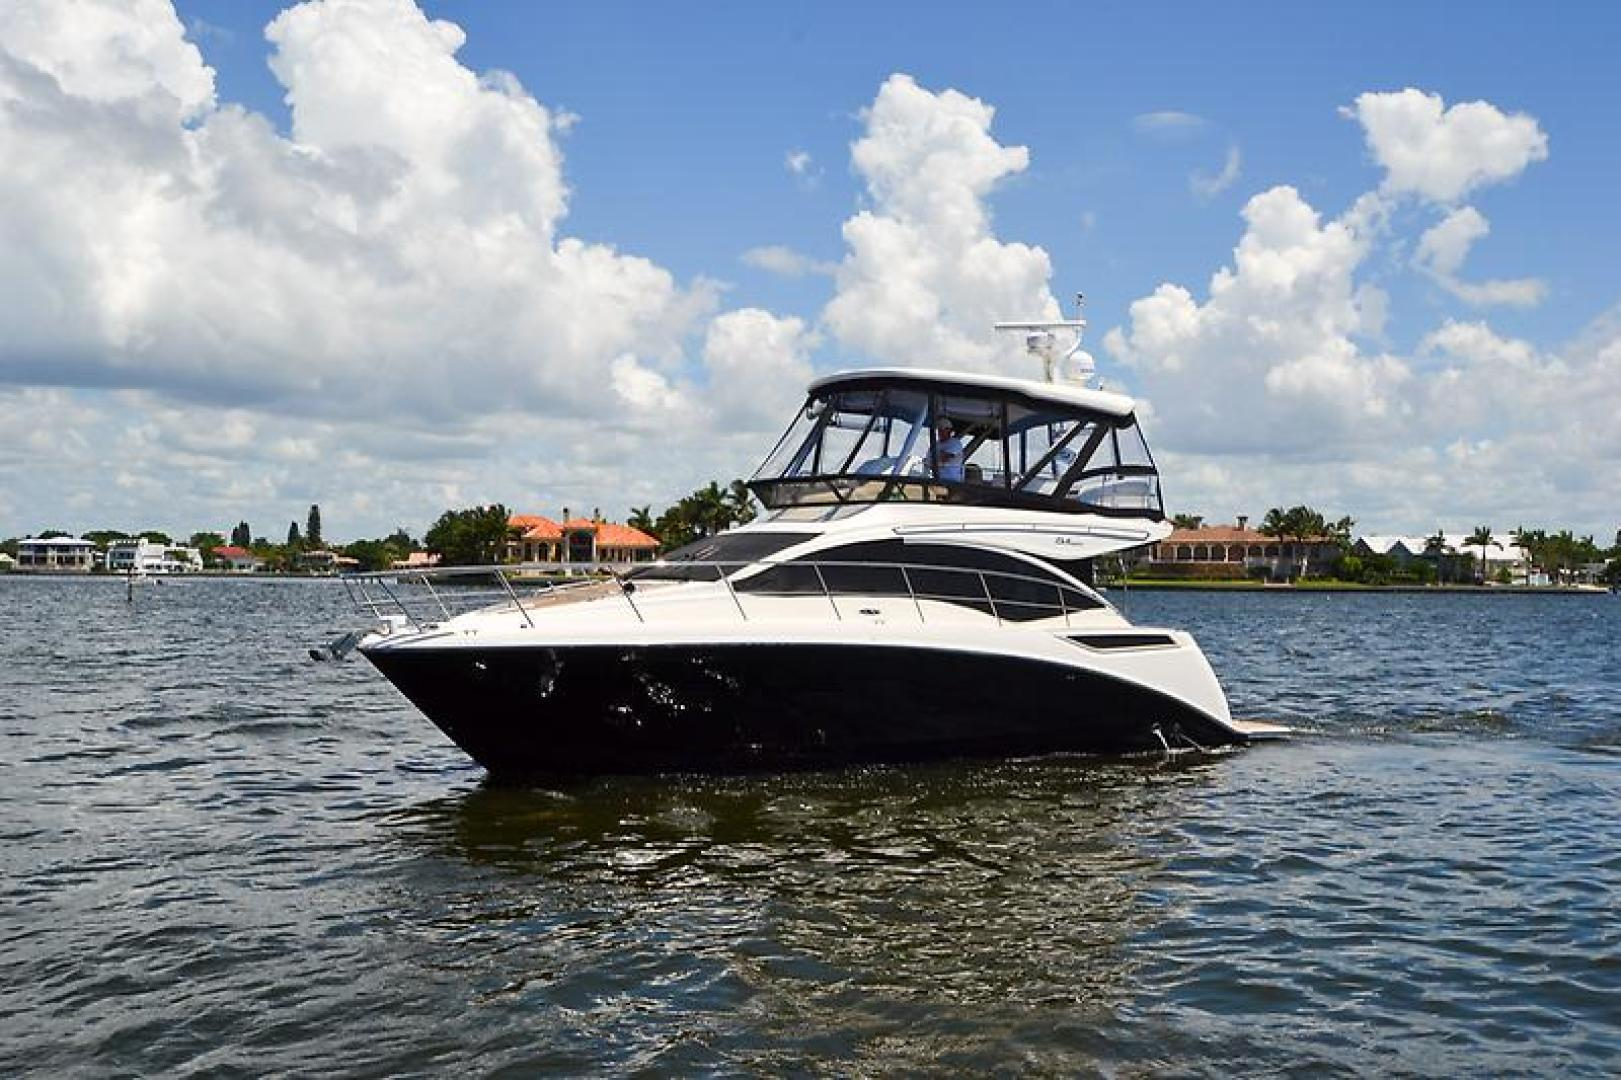 2017 Sea Ray 400 Fly-59.jpg